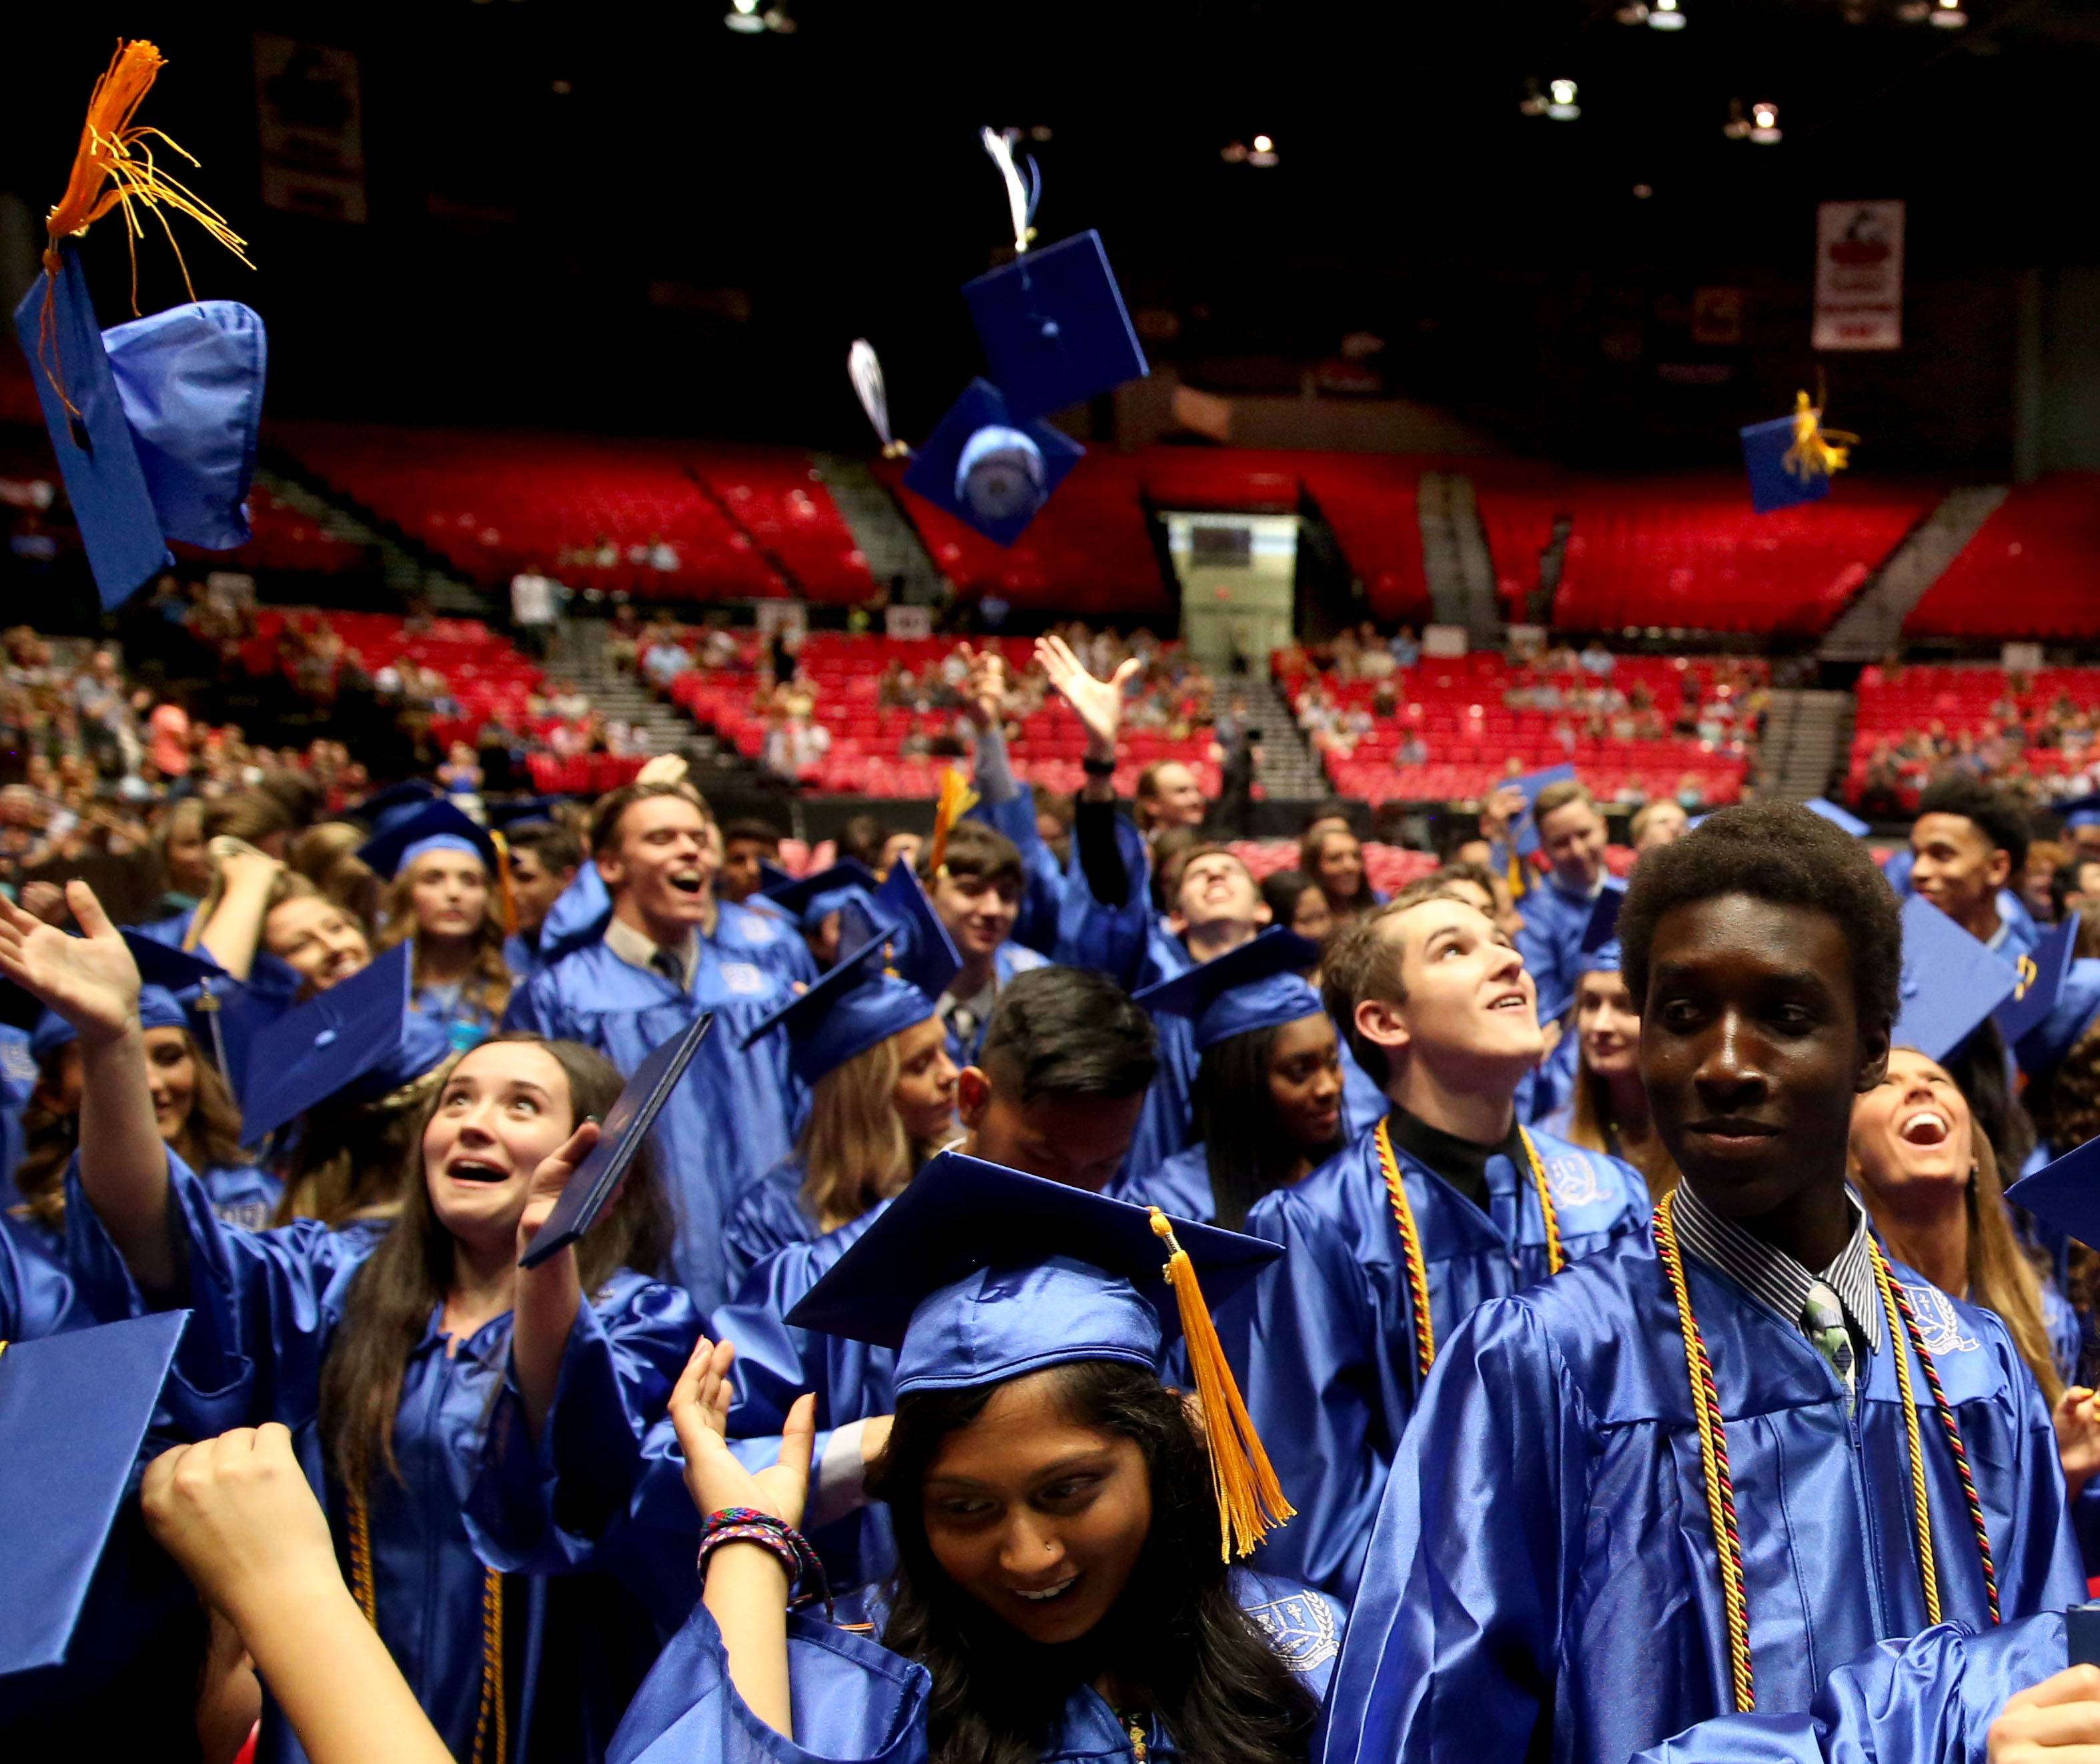 Graduates toss their caps to conclude the commencement program for Burlington Central High School at the Convocation Center on the campus of Northern Illinois University in DeKalb on Thursday, May 24, 2018. The class of 2018 has 249 members.